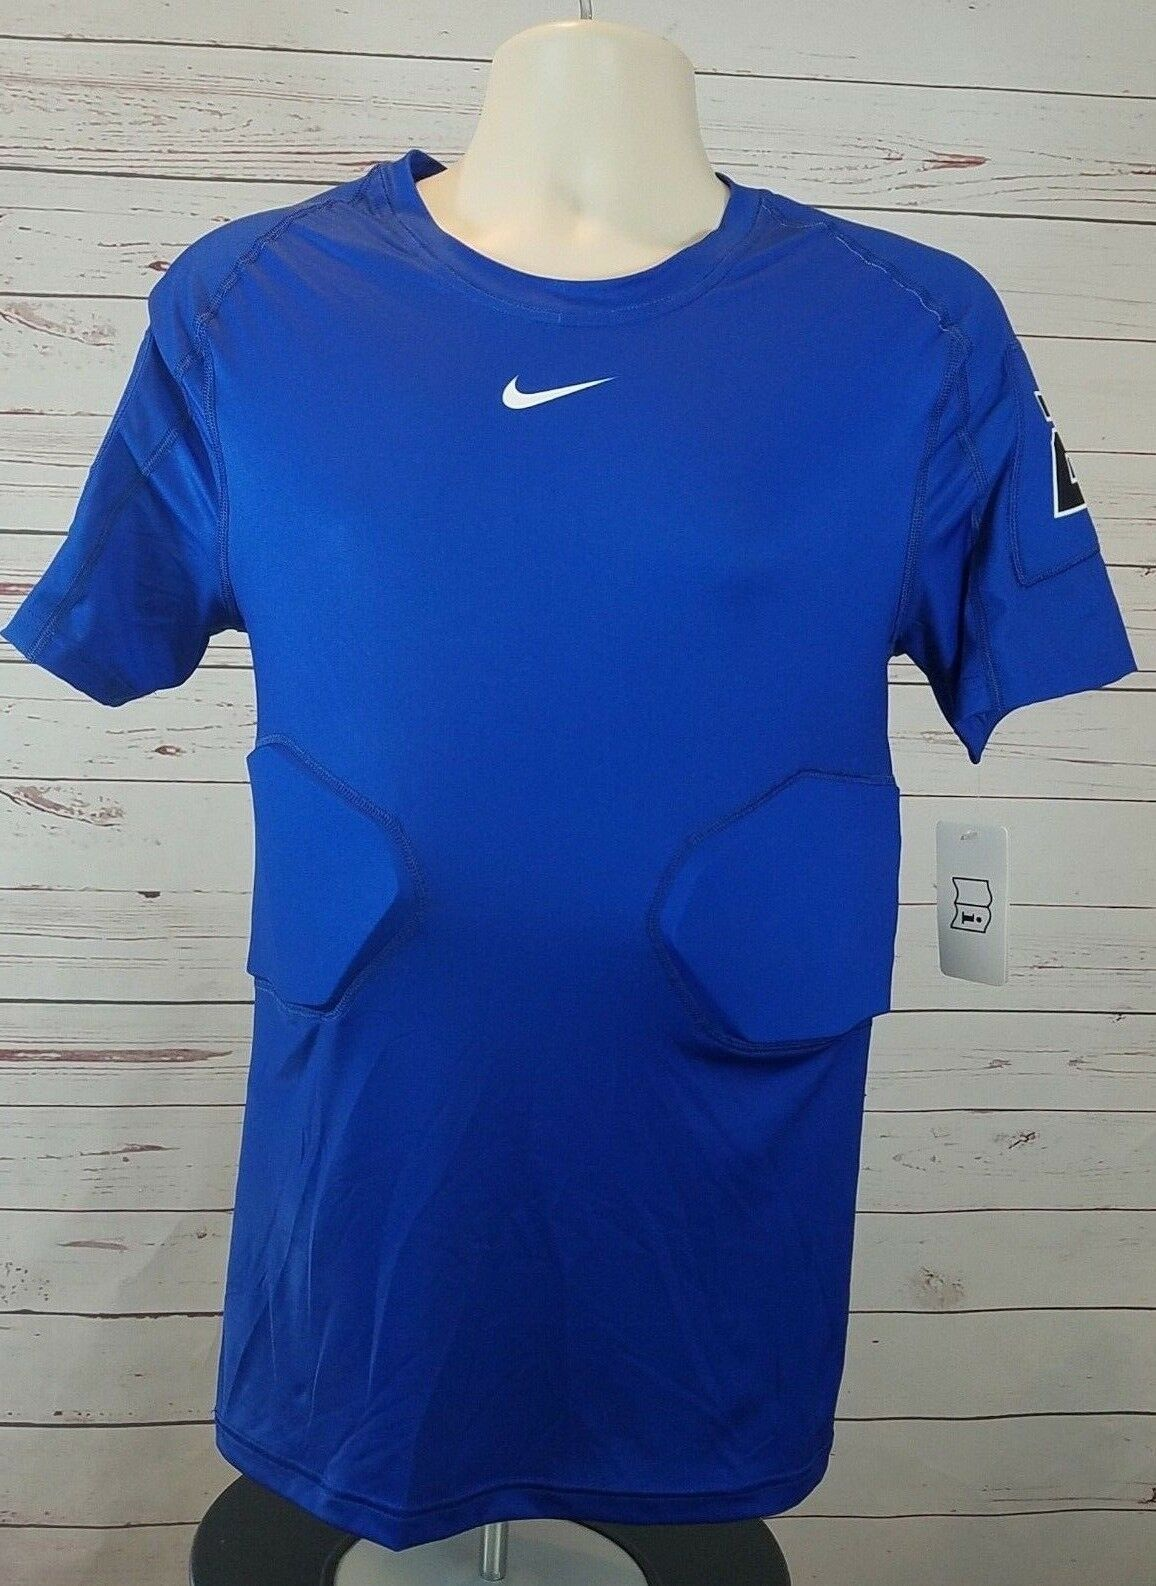 Primary image for NIKE Pro Hyperstrong Team 4 Pad Blue Compression FOOTBALL Top Shirt Large #24